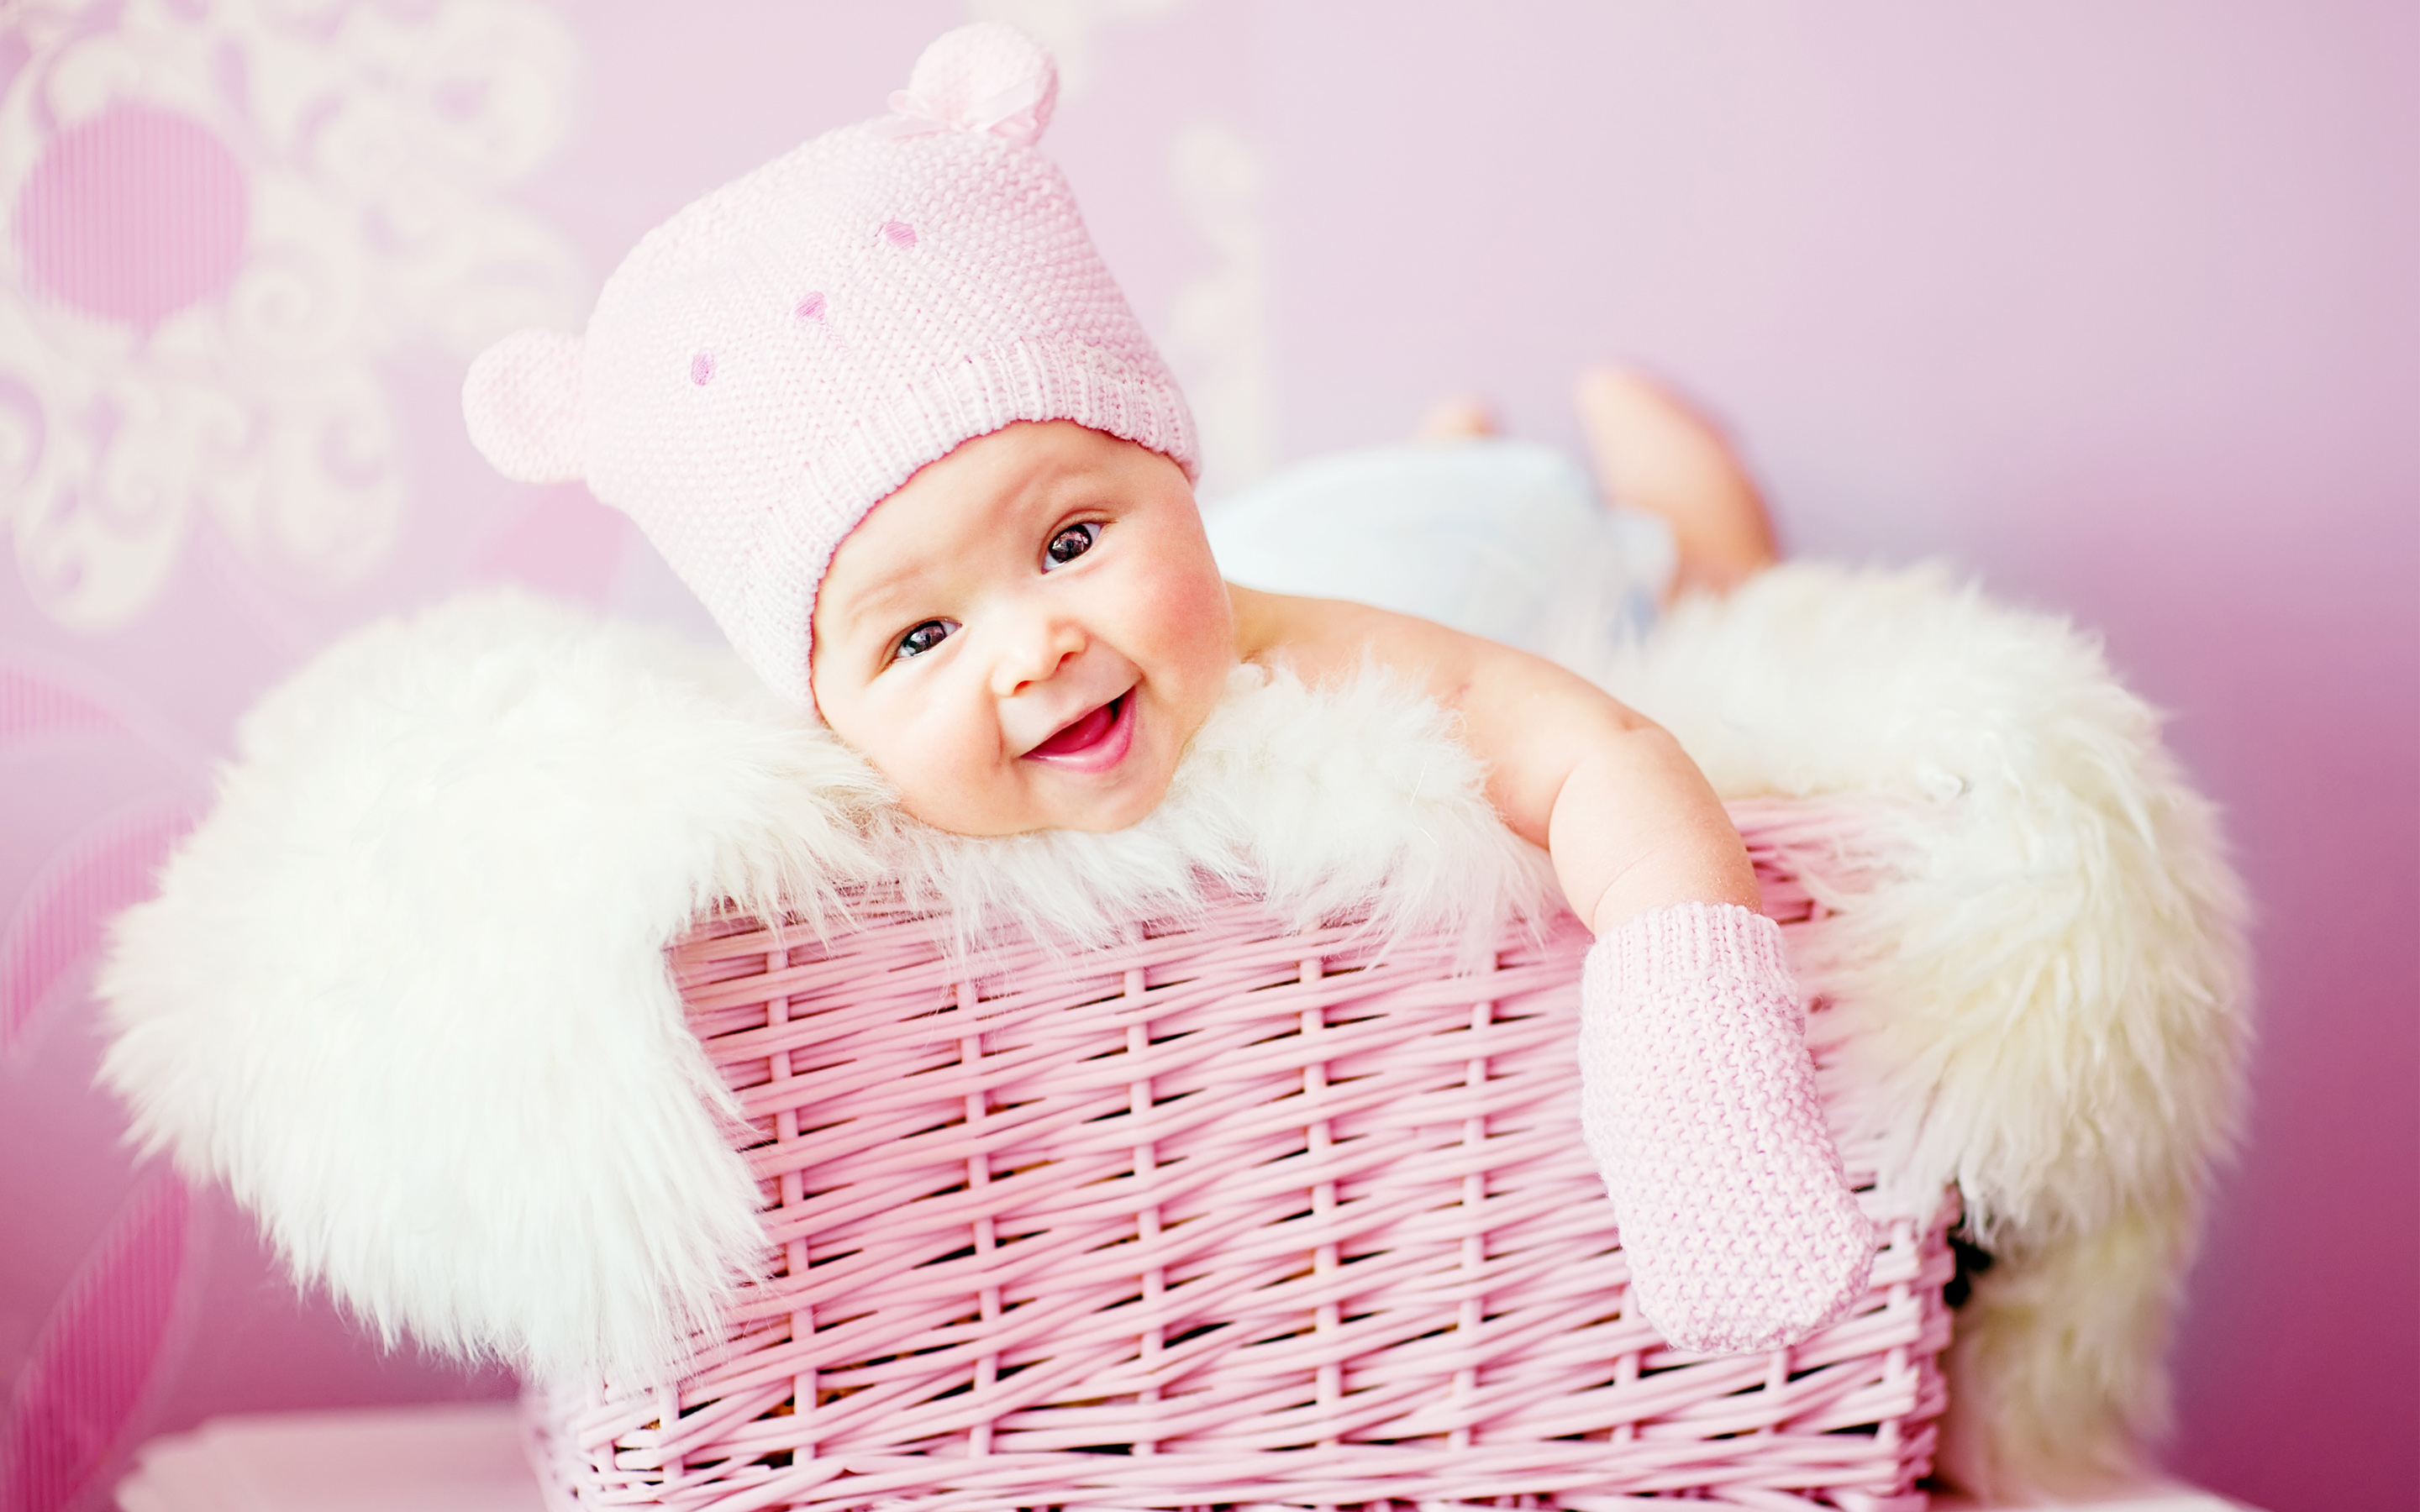 HD Wallpapers Cute Laughing Baby